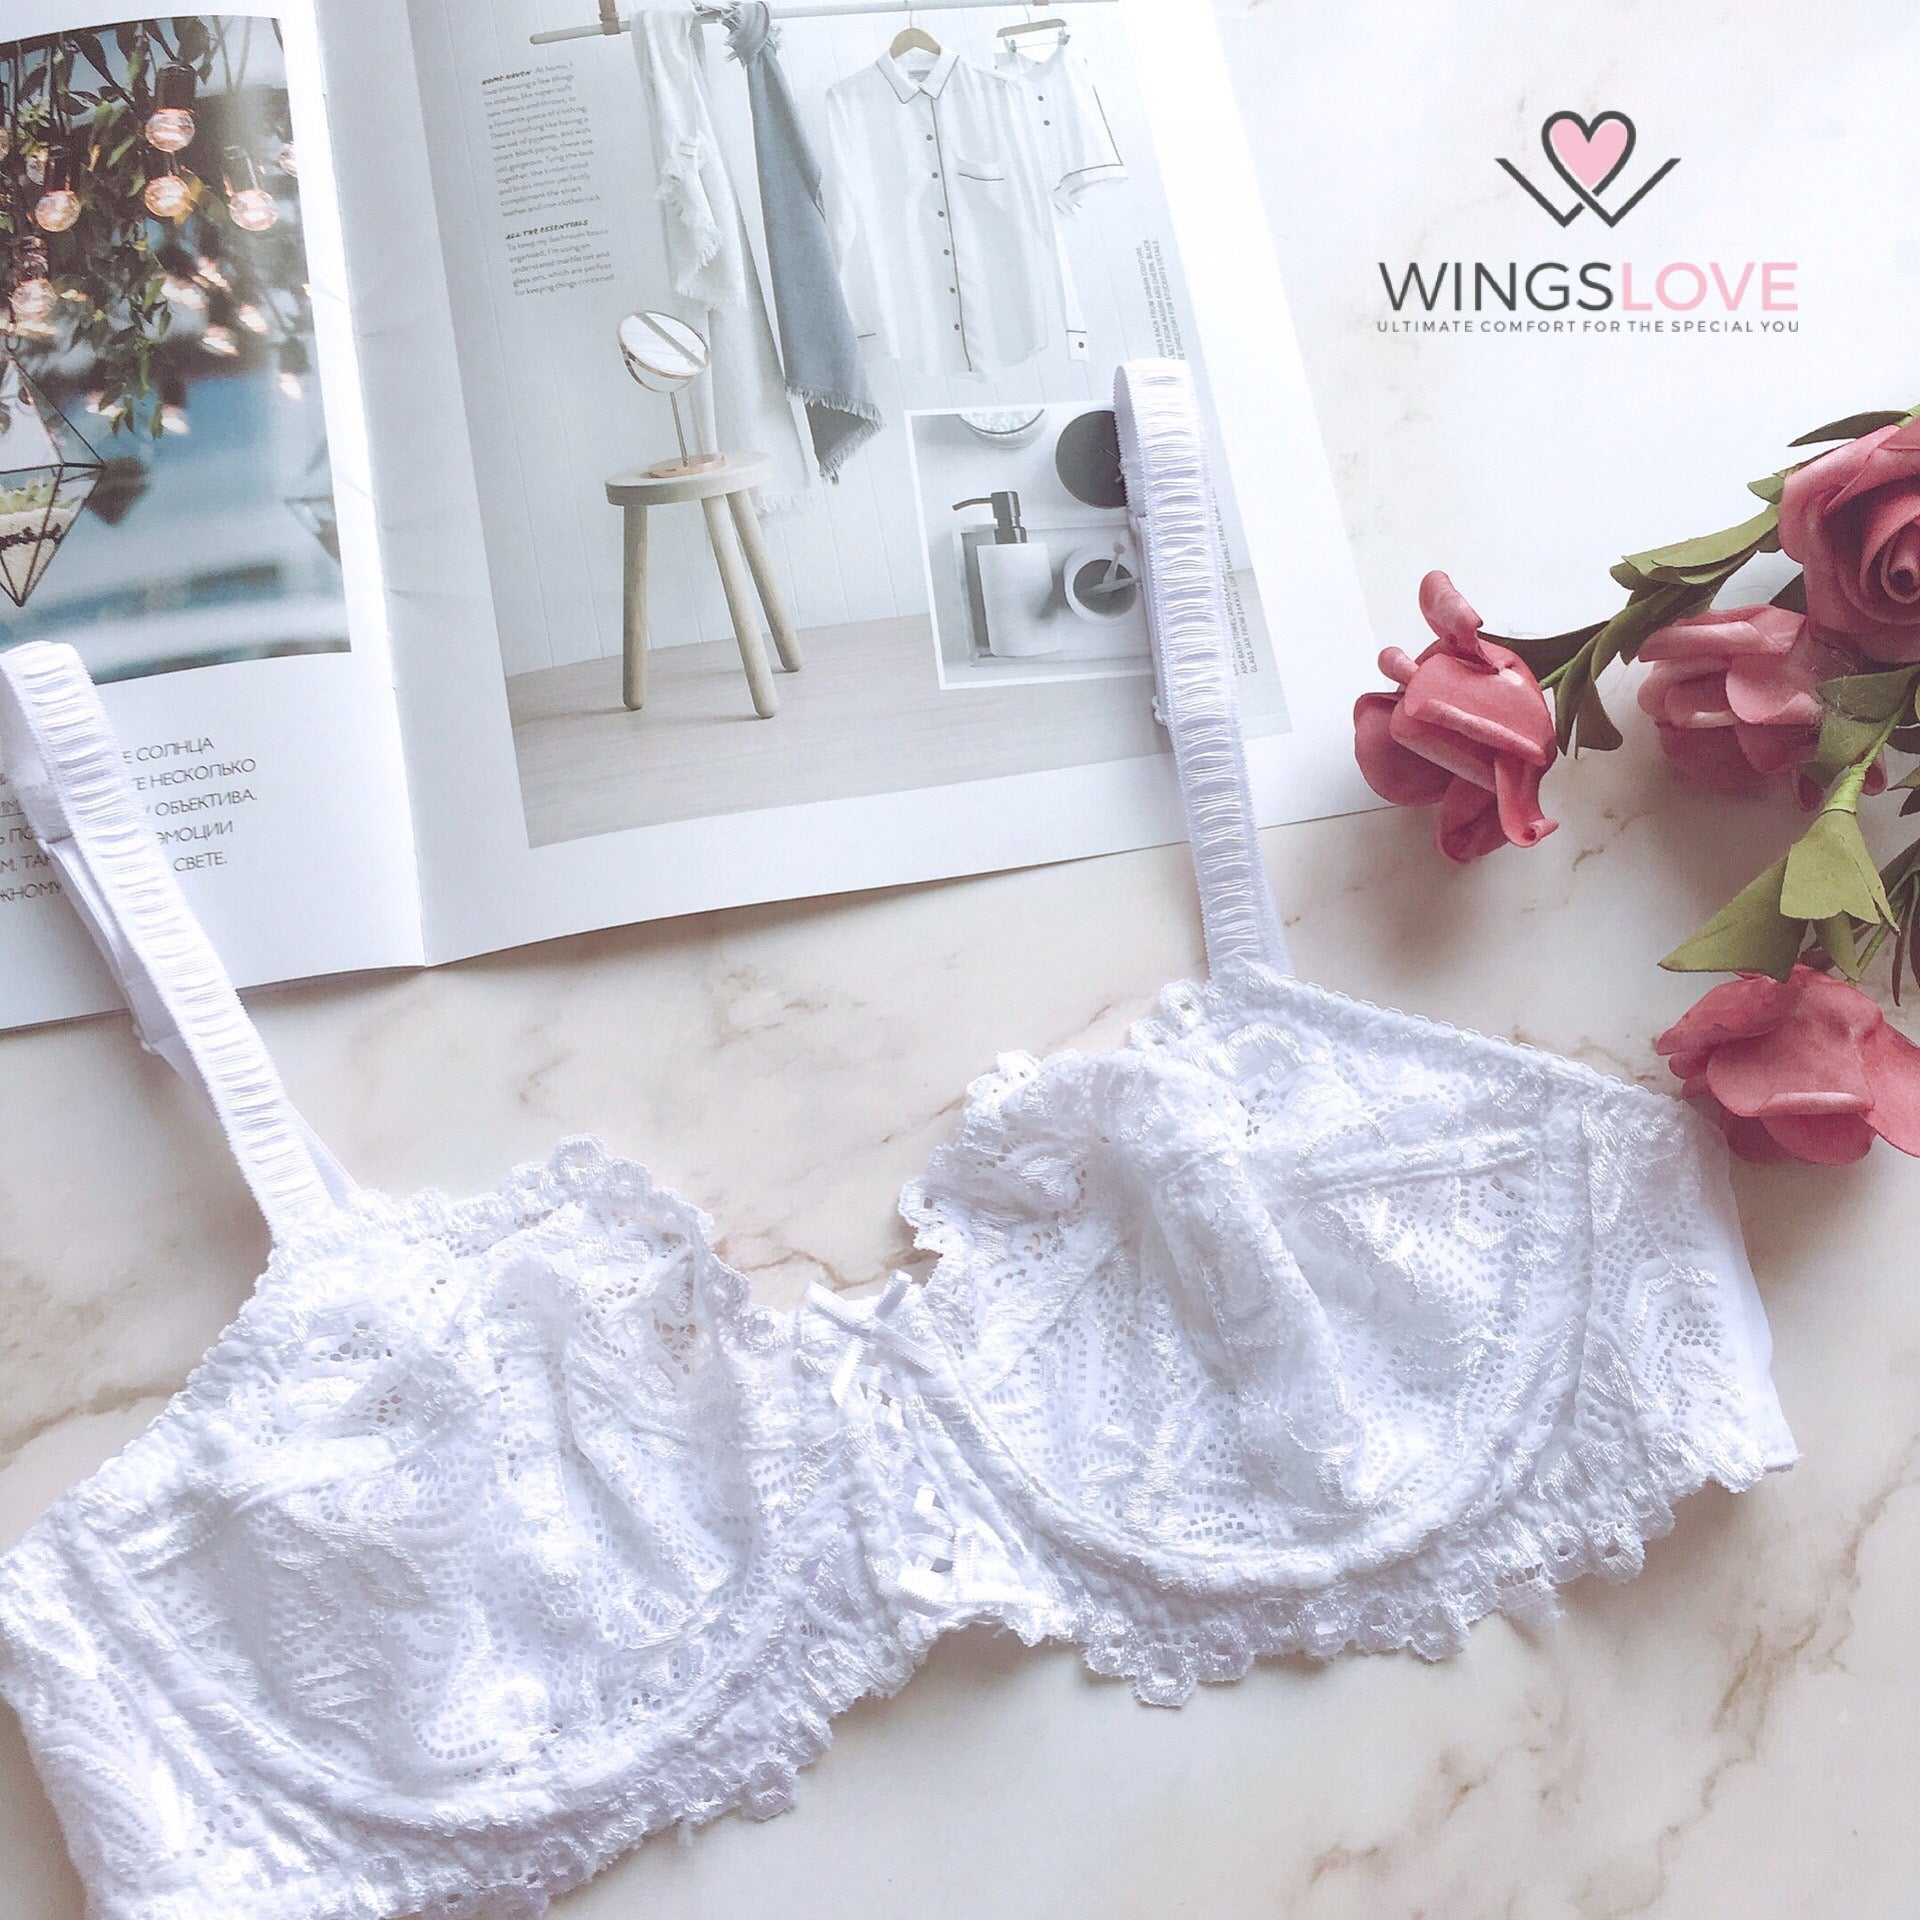 WingsLove Full Coverage Non-Padded Lace Bra Soft Cup